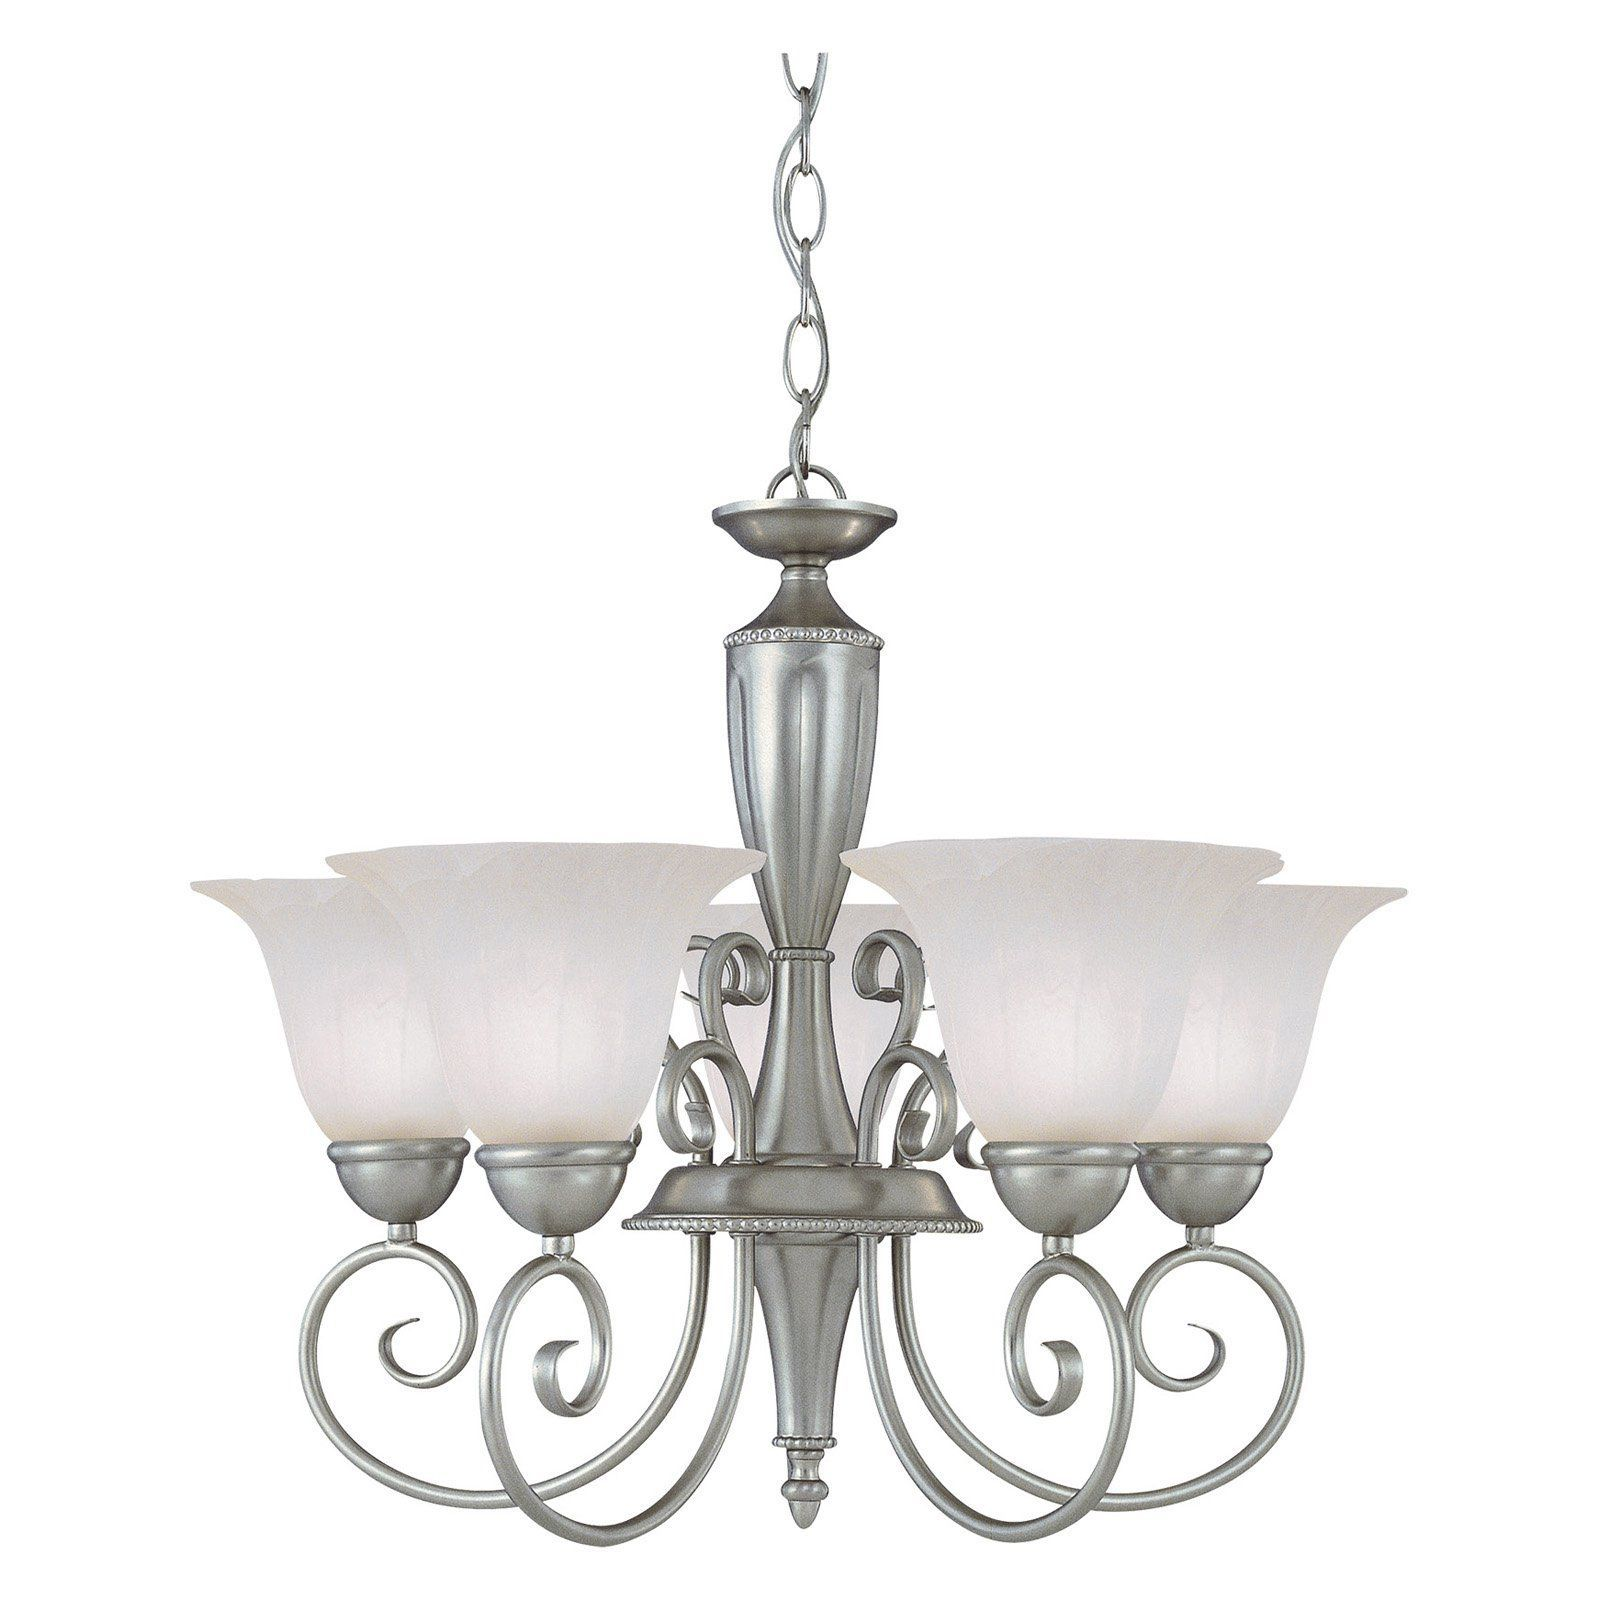 Savoy House Spirit KP-1-5001-5-69 Chandelier - KP-1-5001-5-69